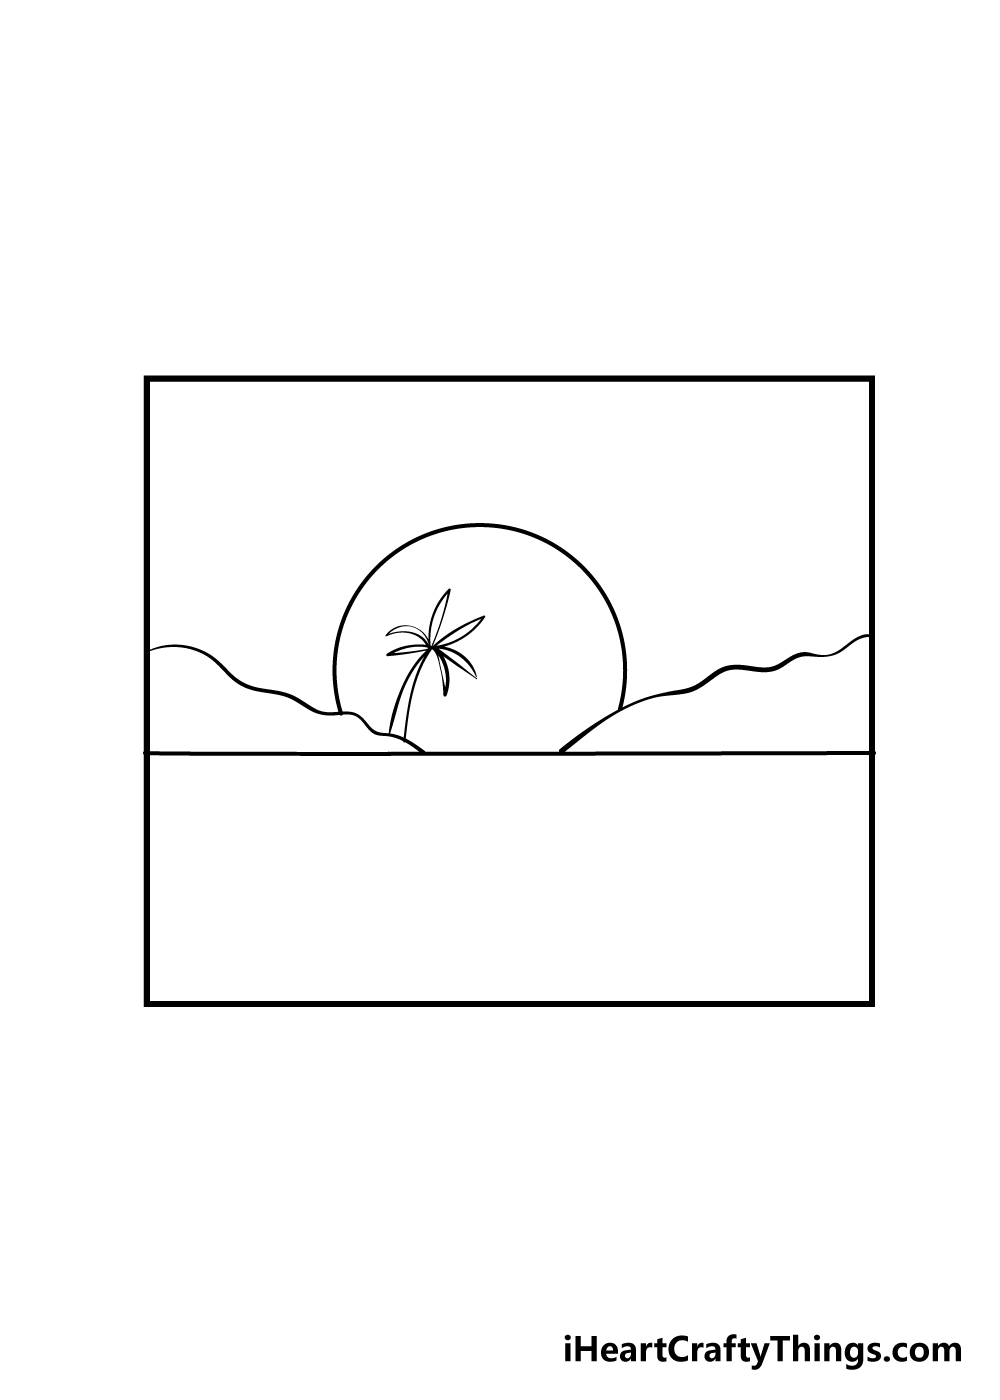 sunset drawing step 4